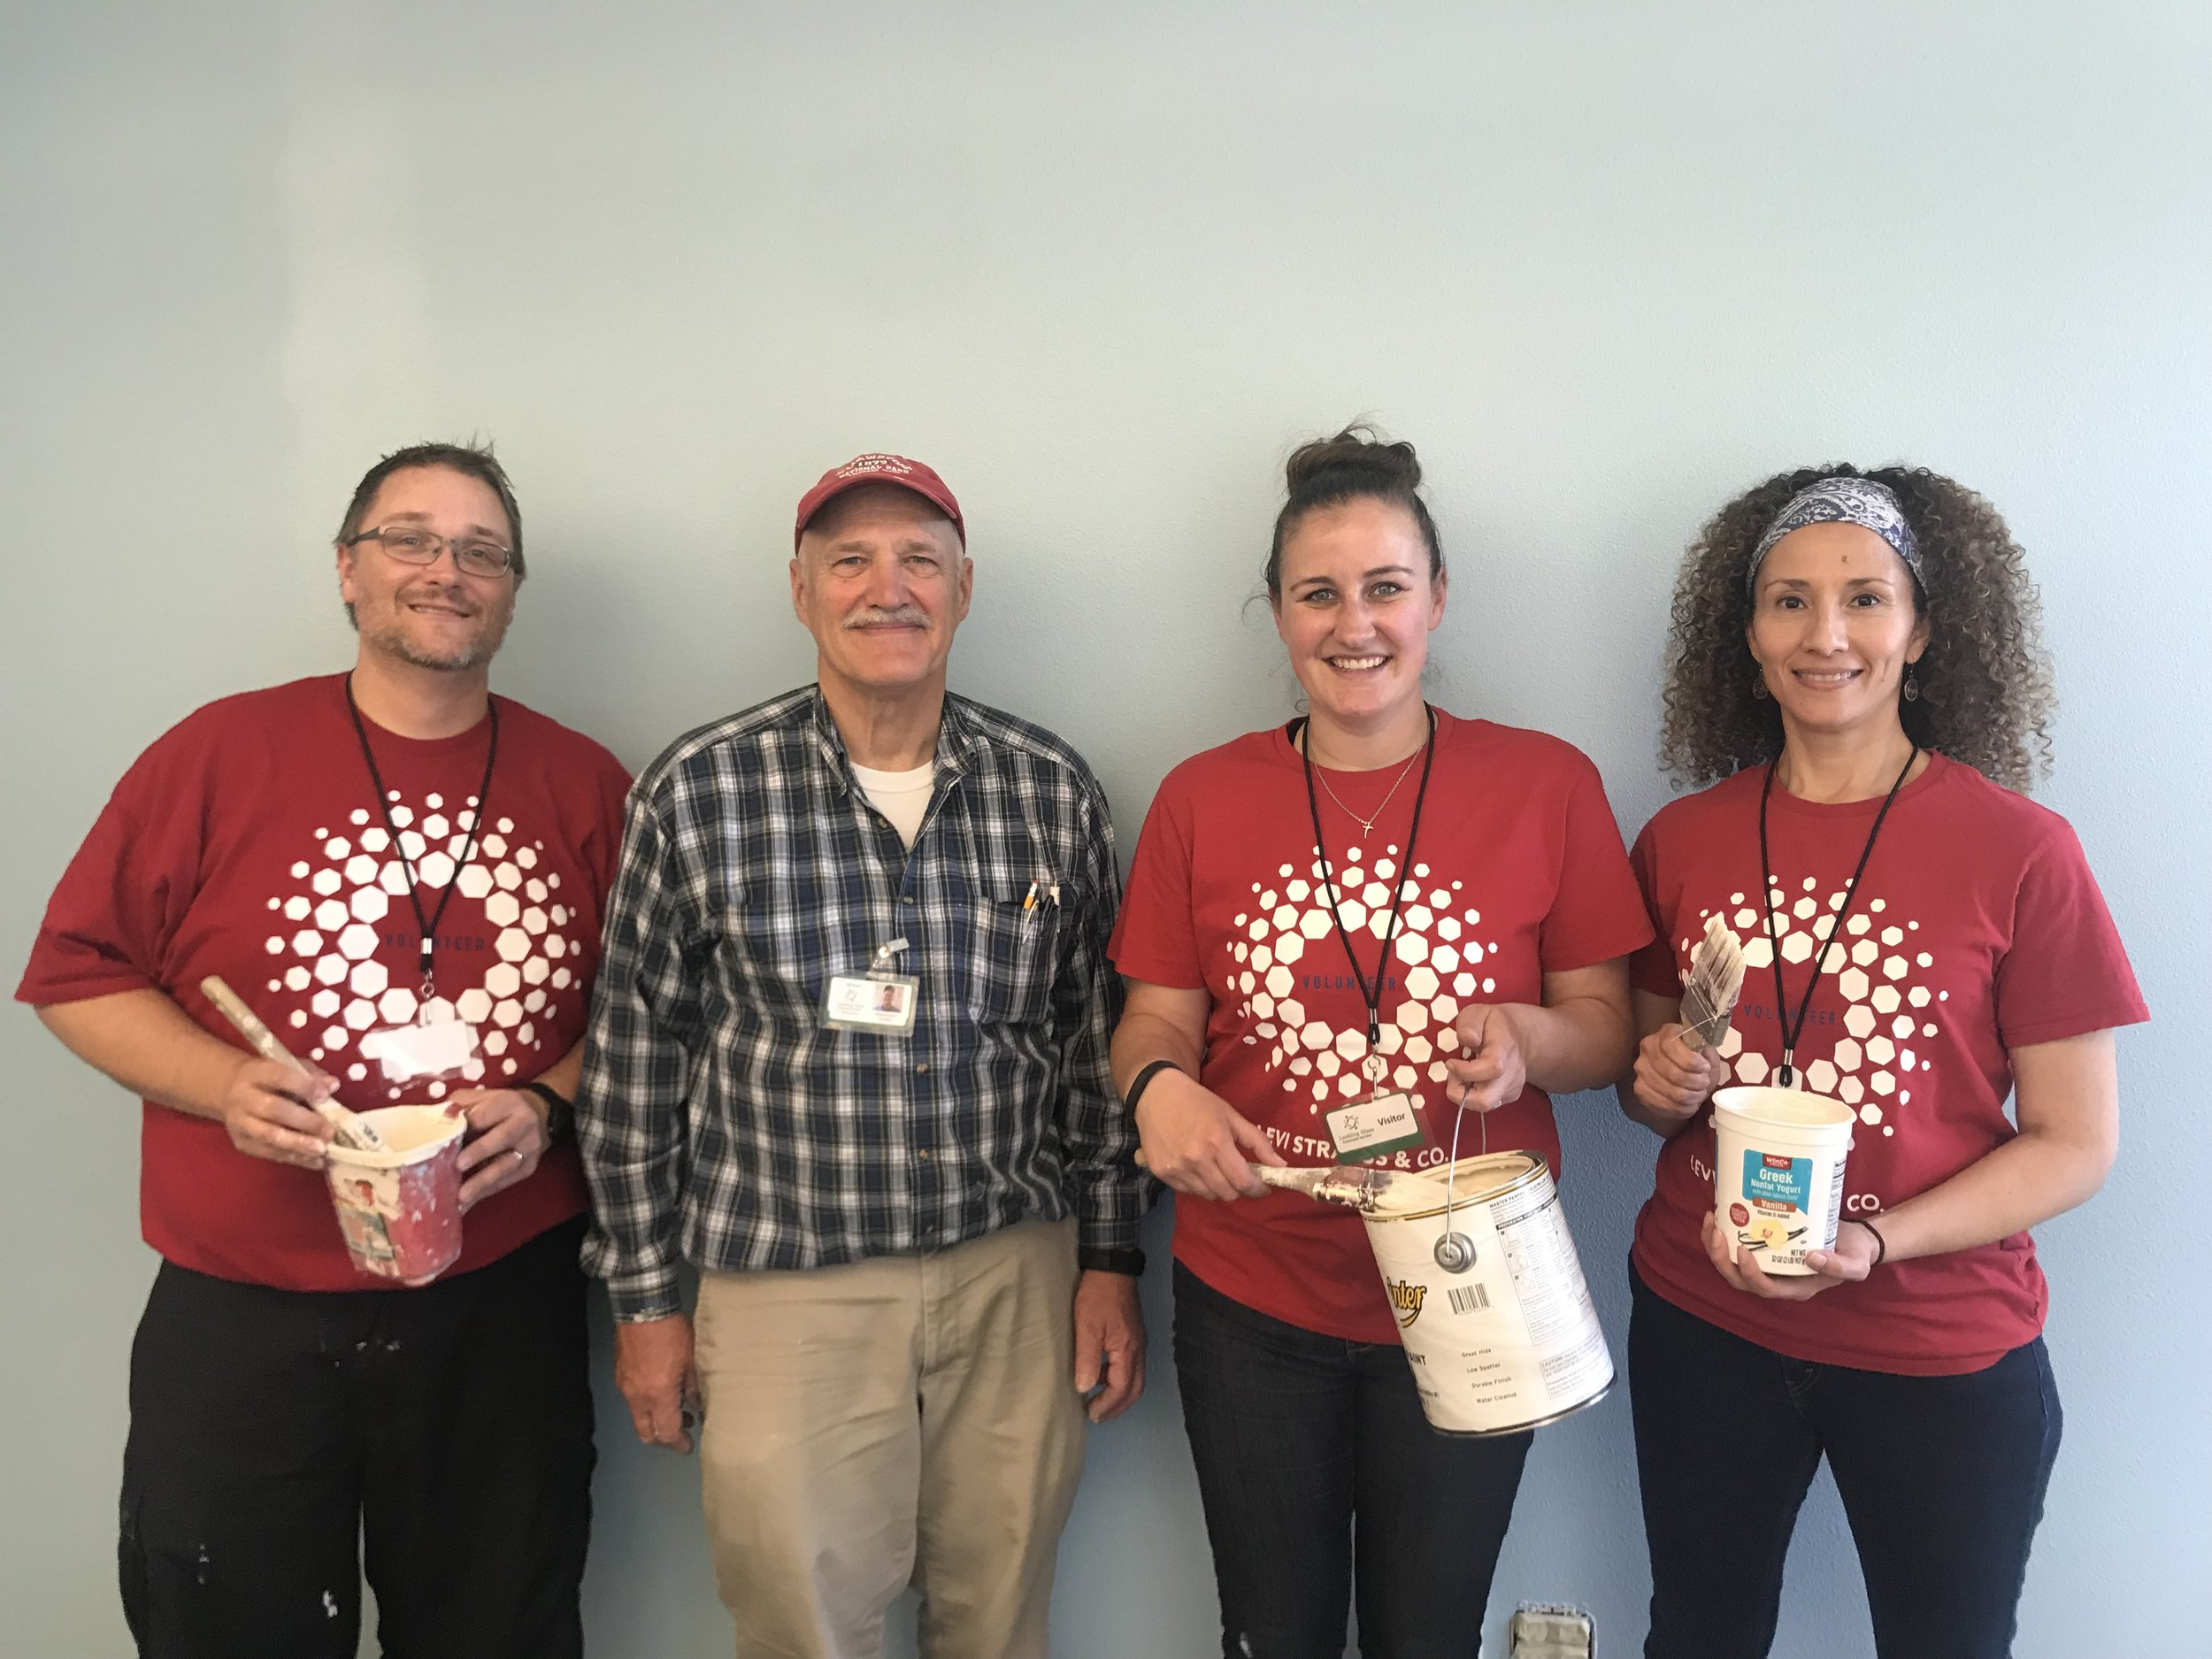 Levi Employees Scott Hanscom, Brianne Emel and Veronica Lockwood join Looking Glass maintenance worker Mike Touchstone in painting a brighter welcoming entrance at the Looking Glass Counseling annex office.